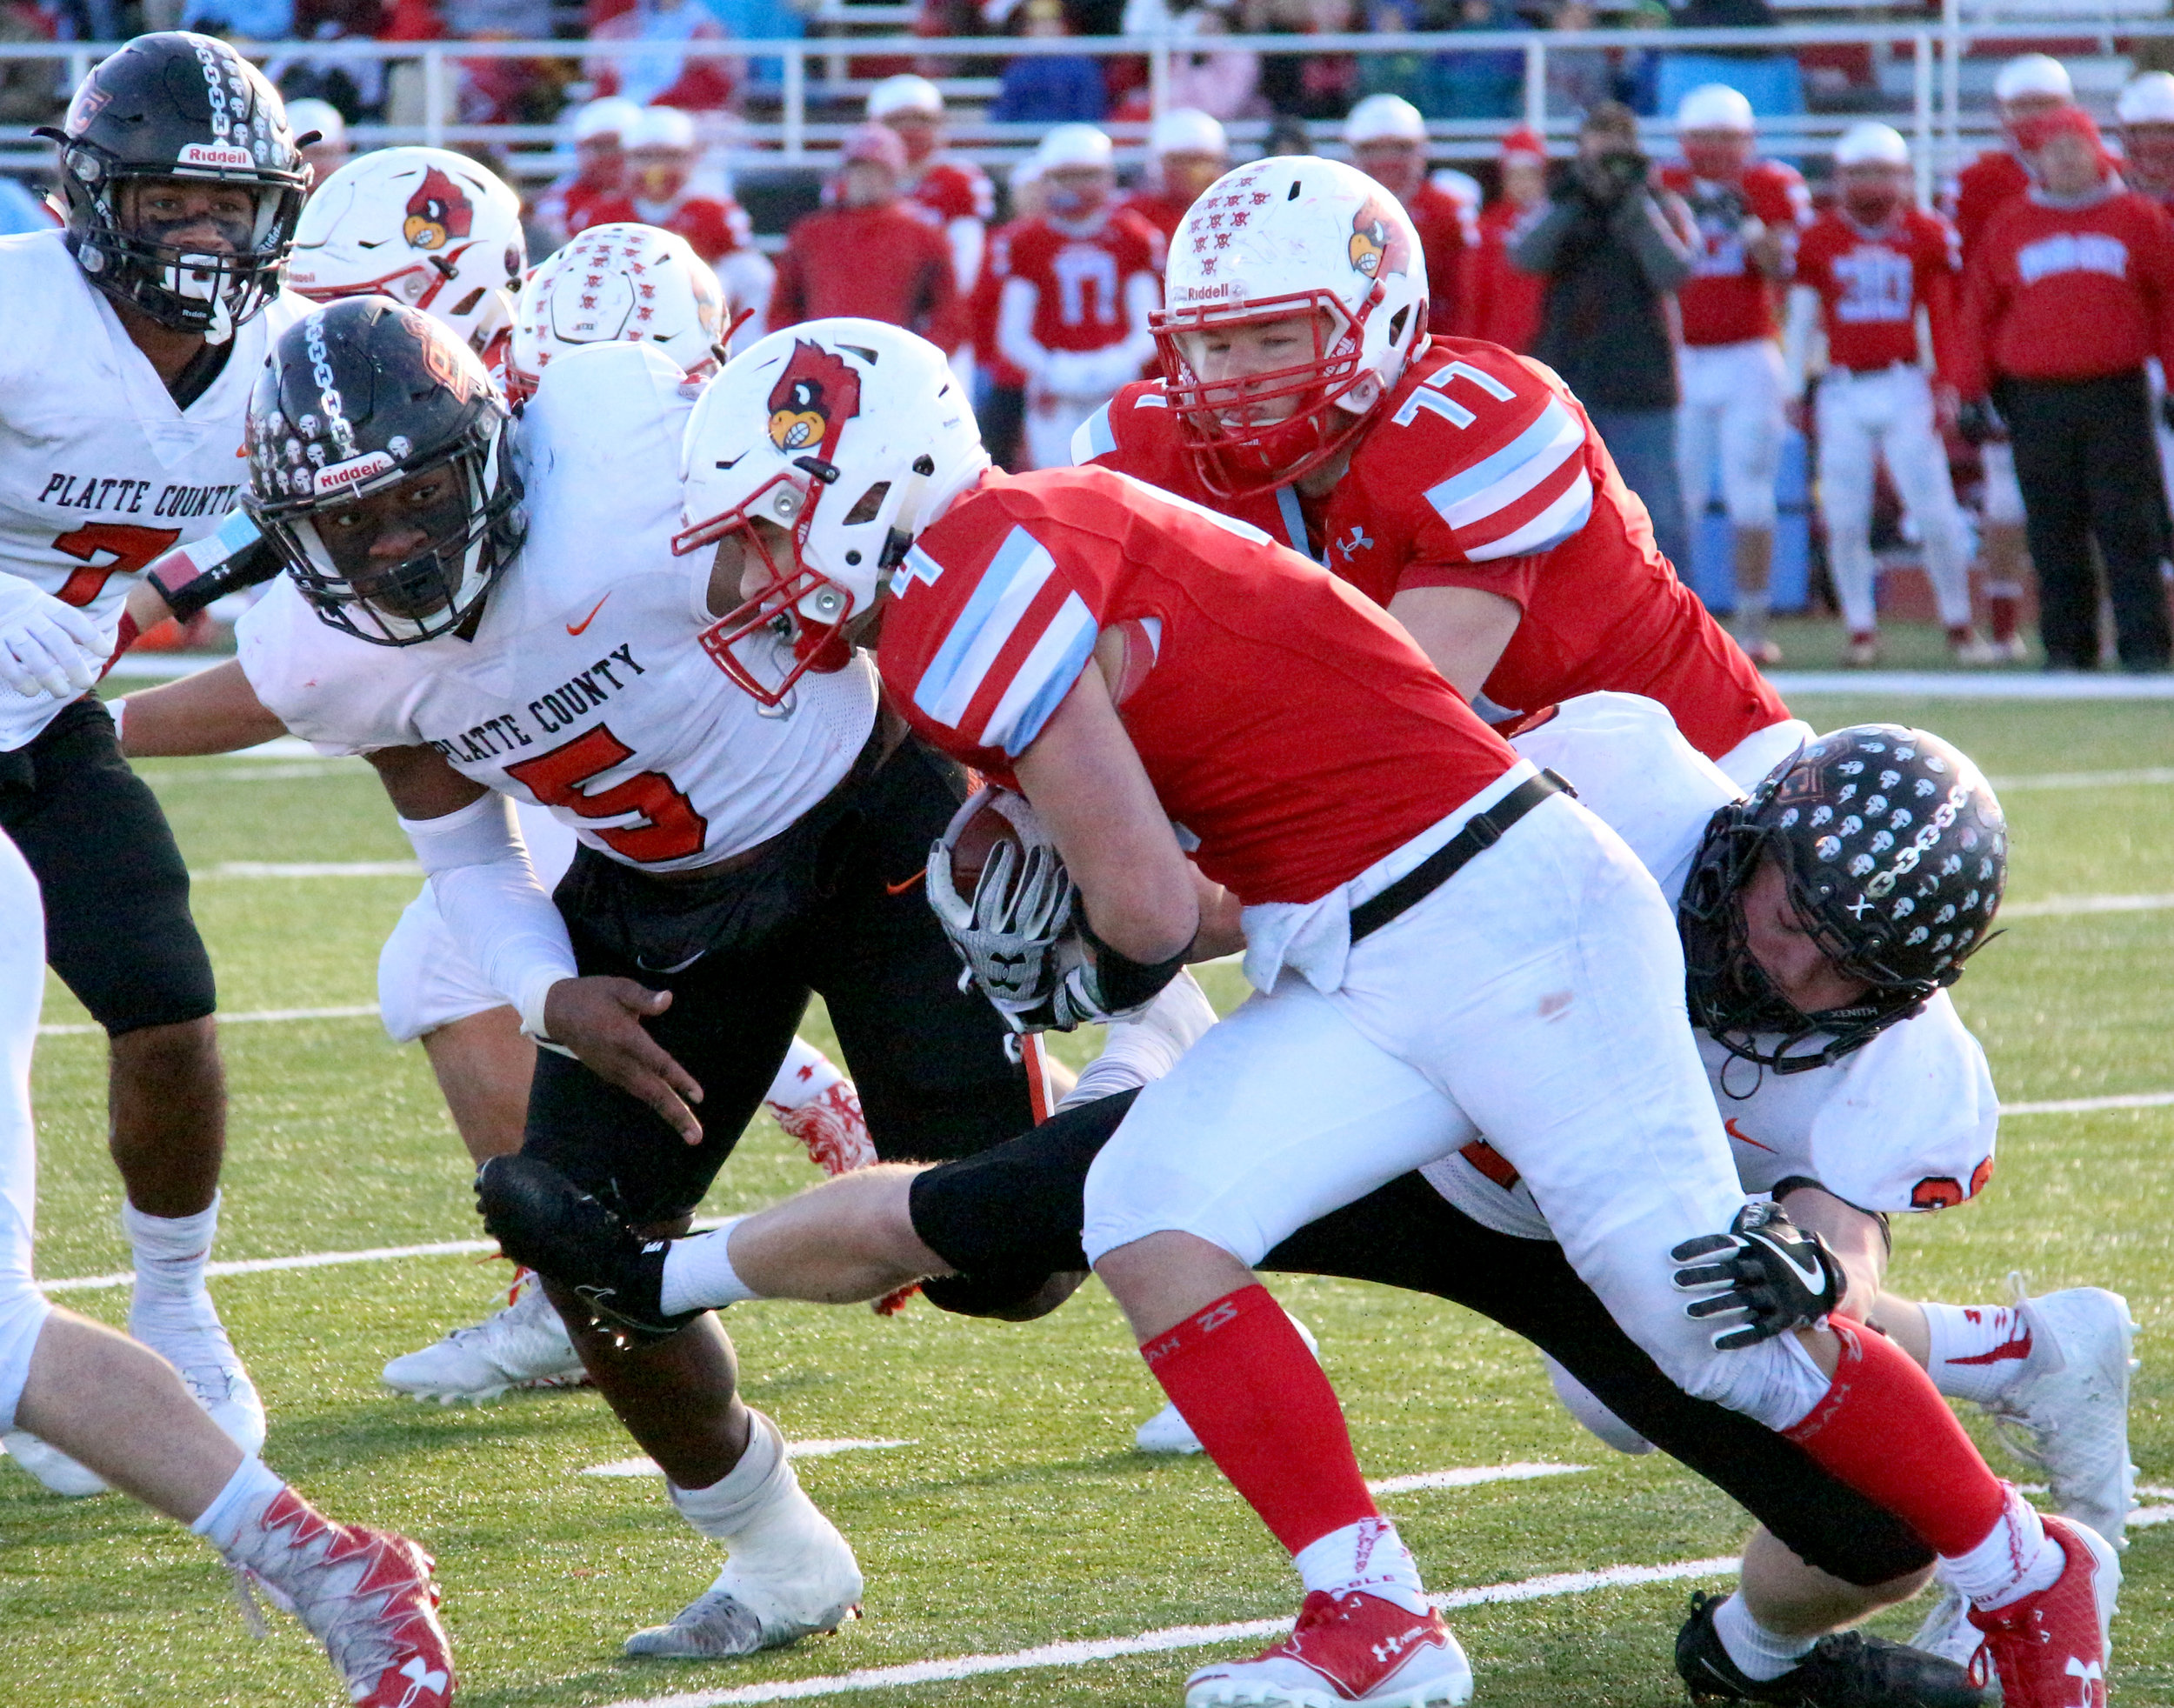 ROSS MARTIN/Citizen photo ABOVE: Platte County seniors Michael Smith (5) and Dakota Schmidt (bottom right) make a tackle in a Class 4 semifinal Saturday, Nov. 18 at Cardinal Stadium in Webb City, Mo.